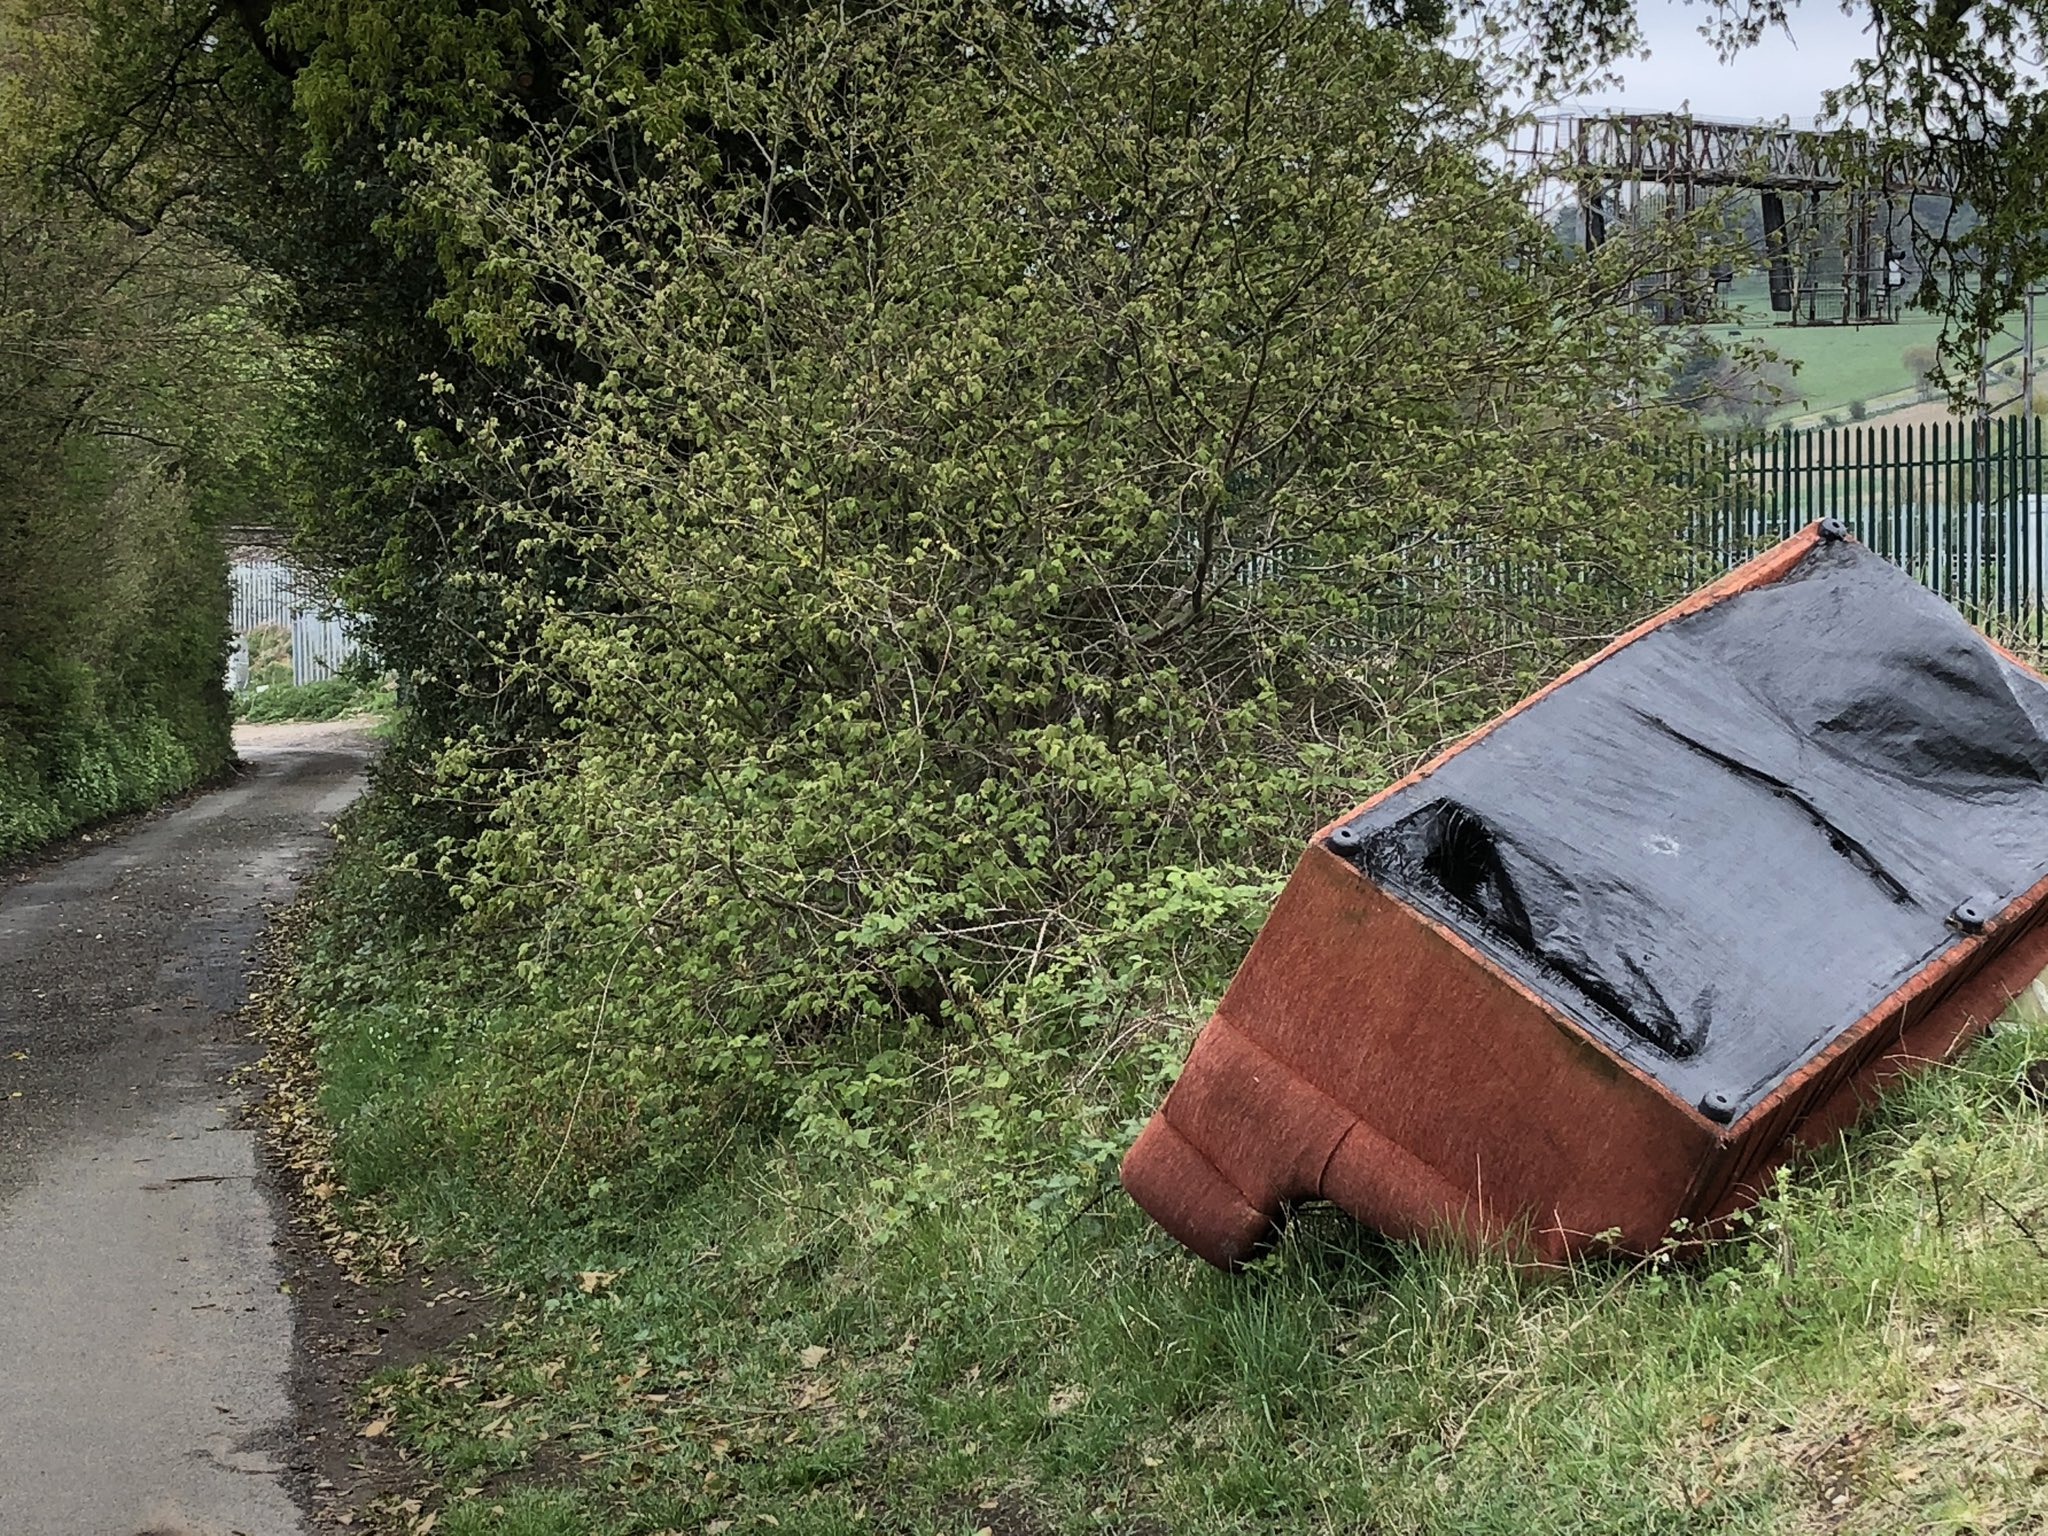 A recent flytip near Harpenden